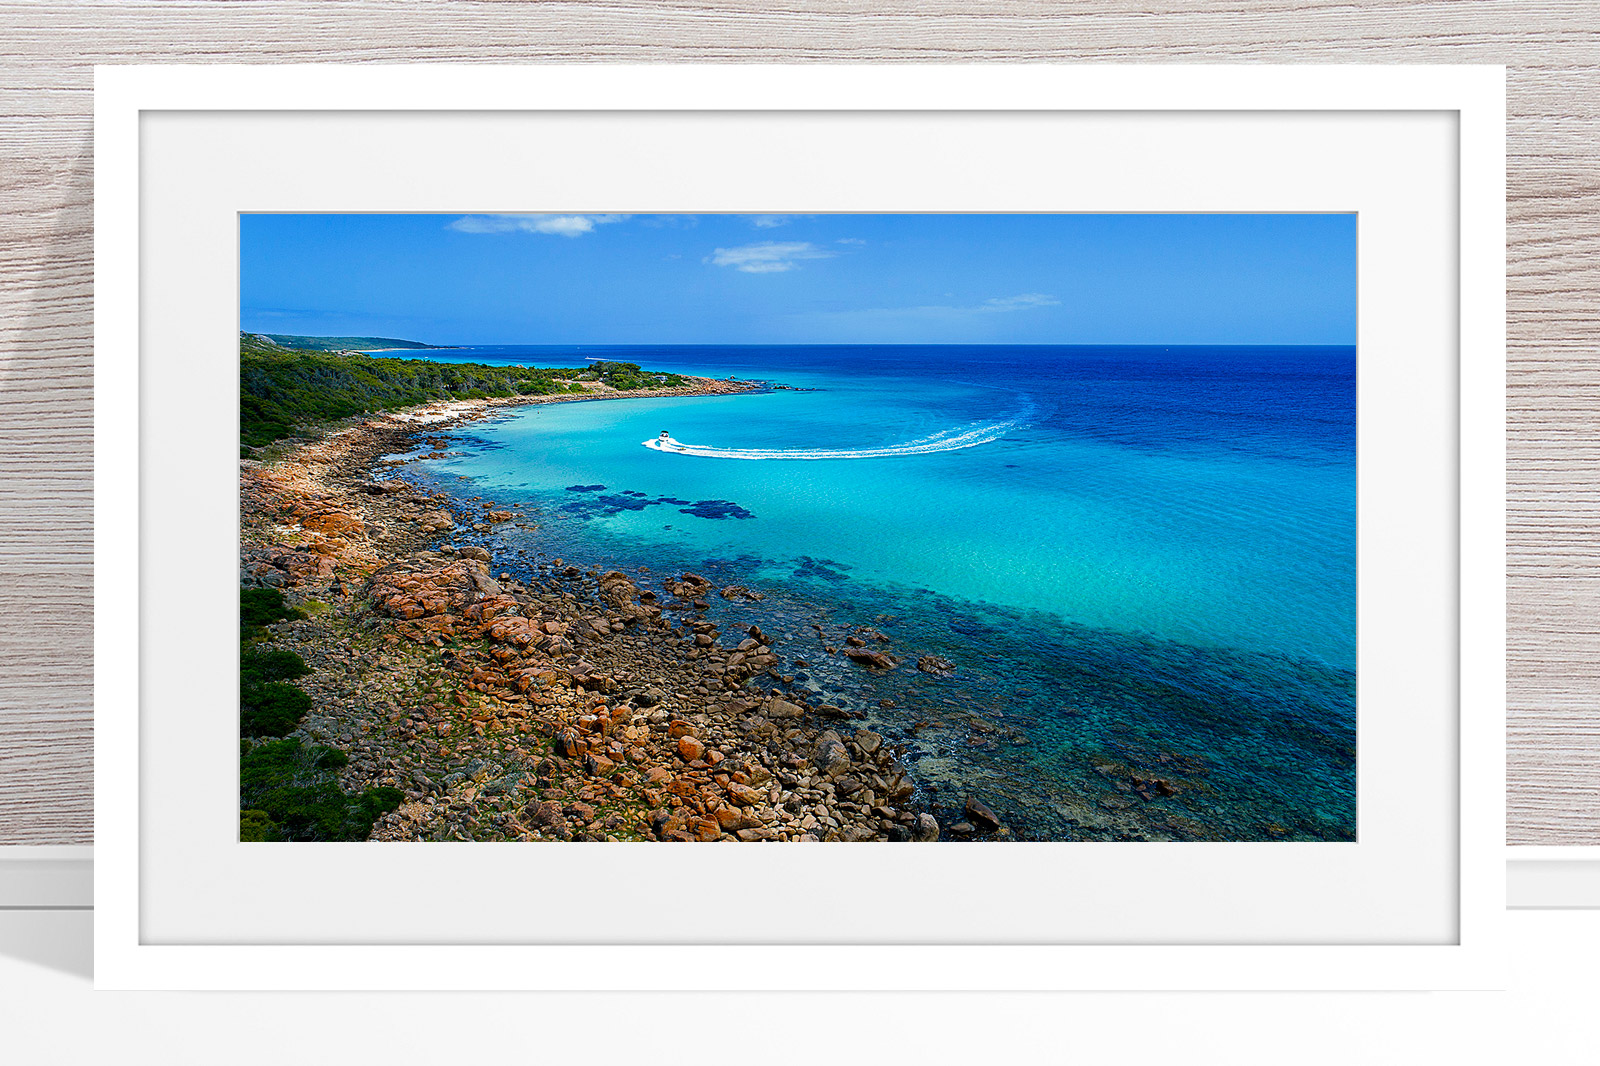 027 - Jason Mazur - 'Meelup Coastline, Dunsborough' White Frame